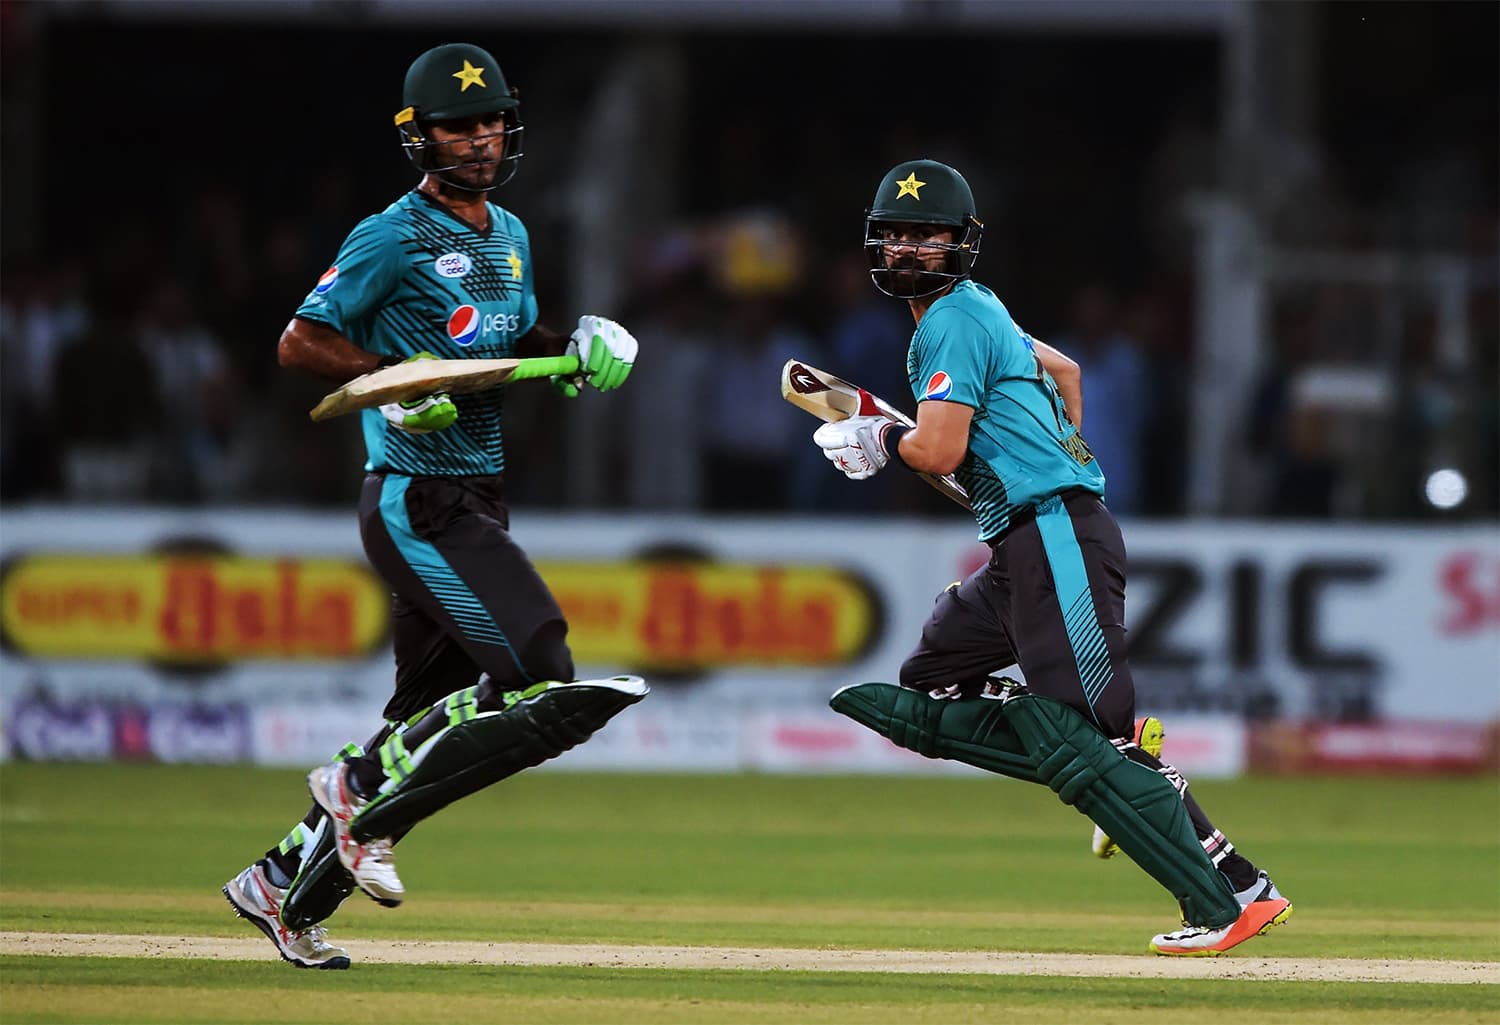 Babar Azam (L) and Ahmed Shehzad lead the batting chart. – AFP